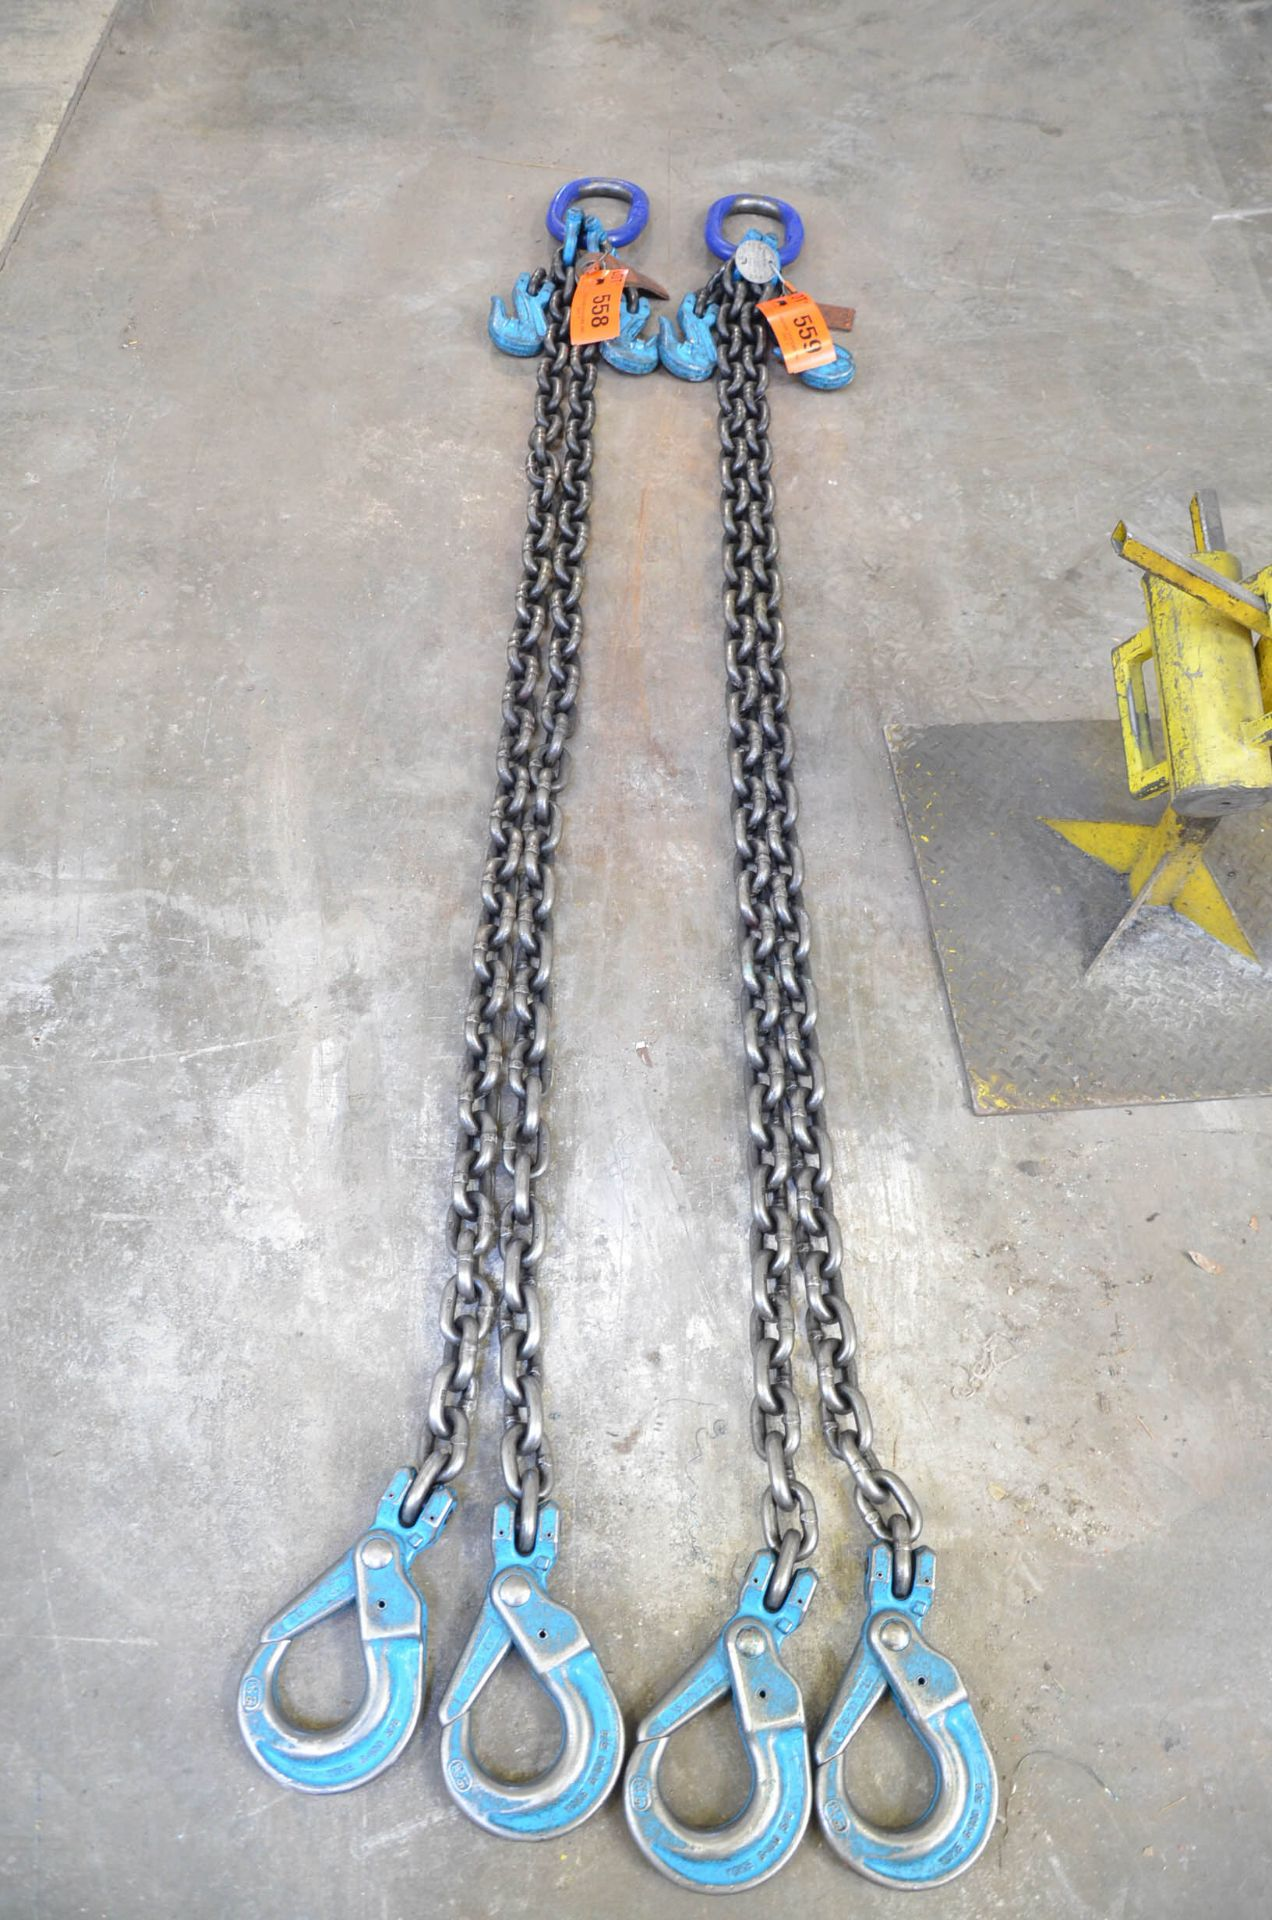 """SPARTAN (2018) 5/8"""" X 8.5' 2-PART LIFTING CHAIN WITH 39,000 LBS CAPACITY"""